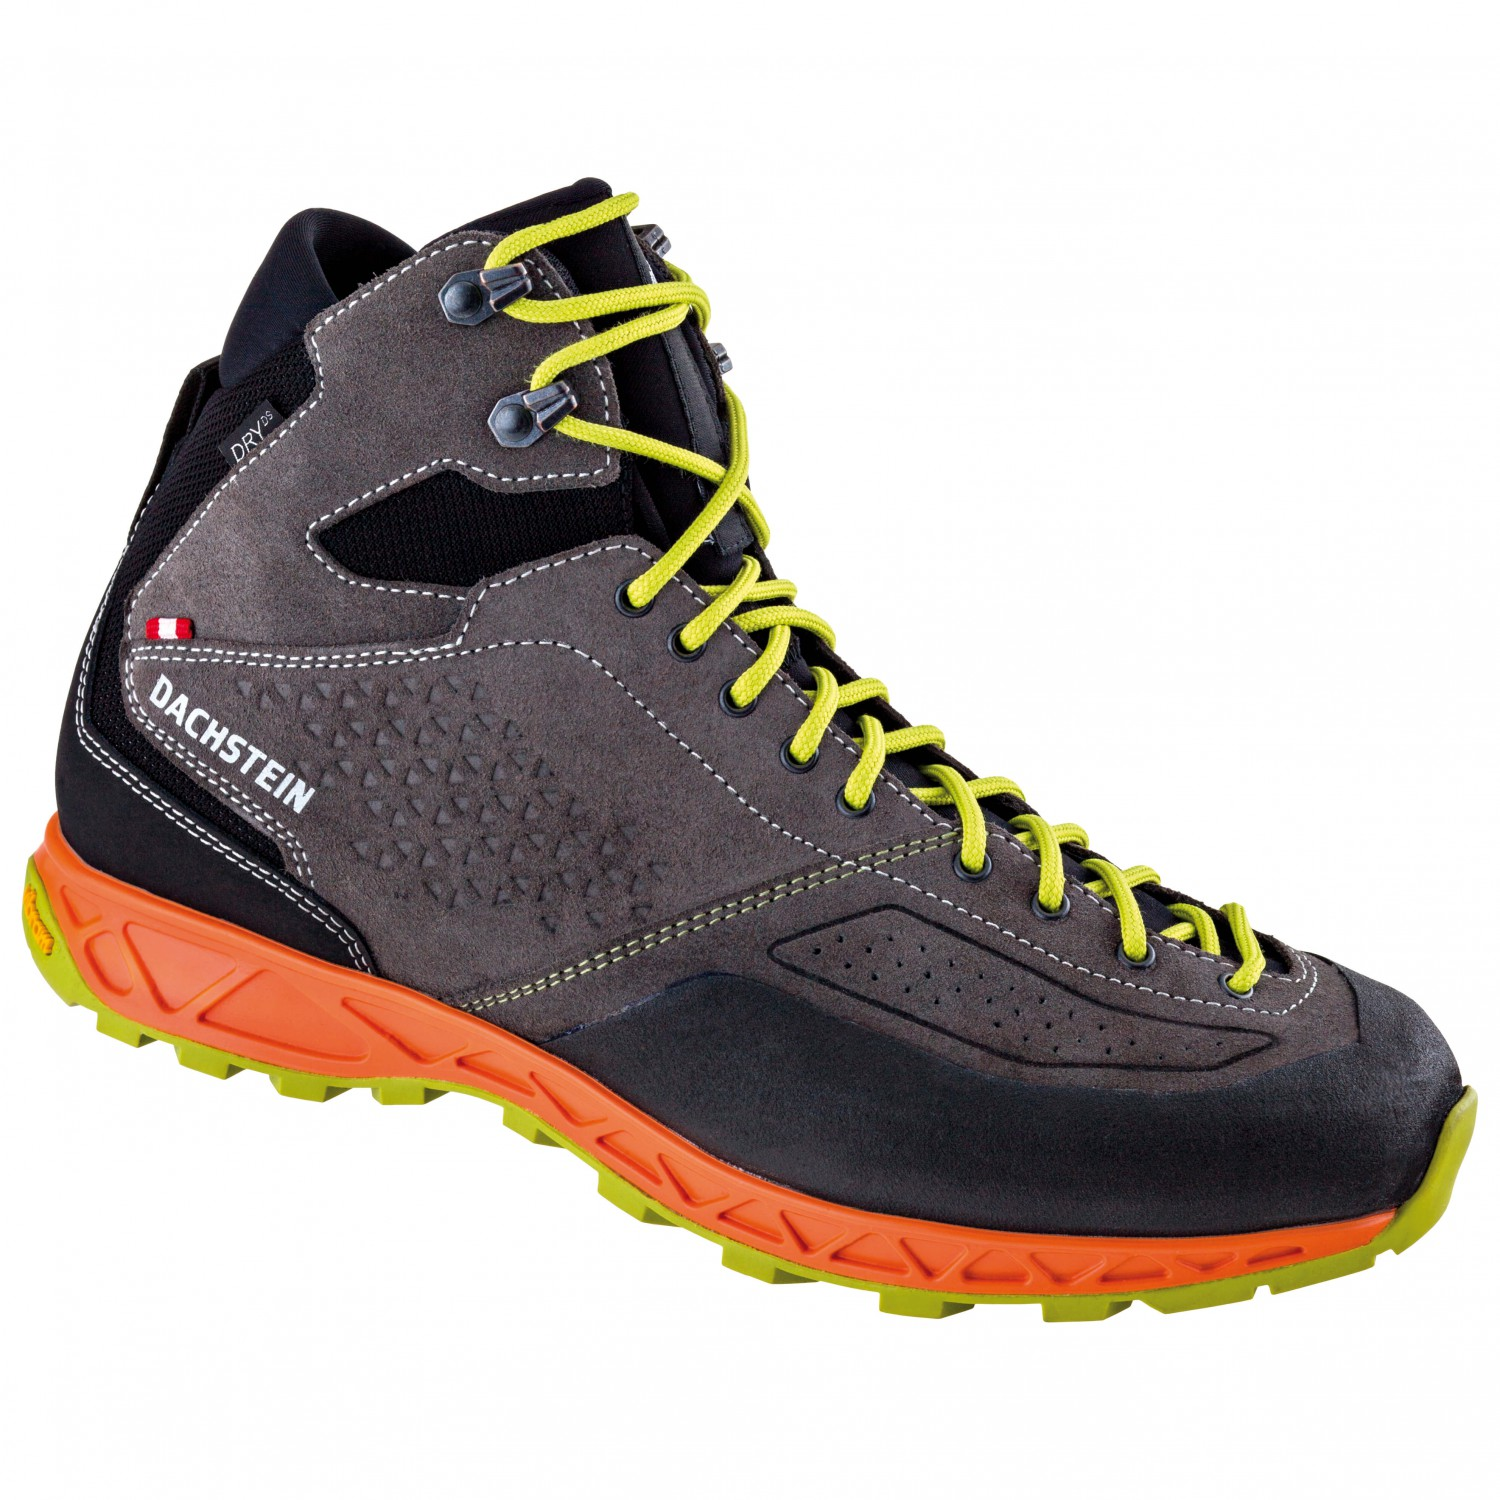 Dachstein - Super Ferrata MC DDS - Approachschuhe Graphite / Oasis